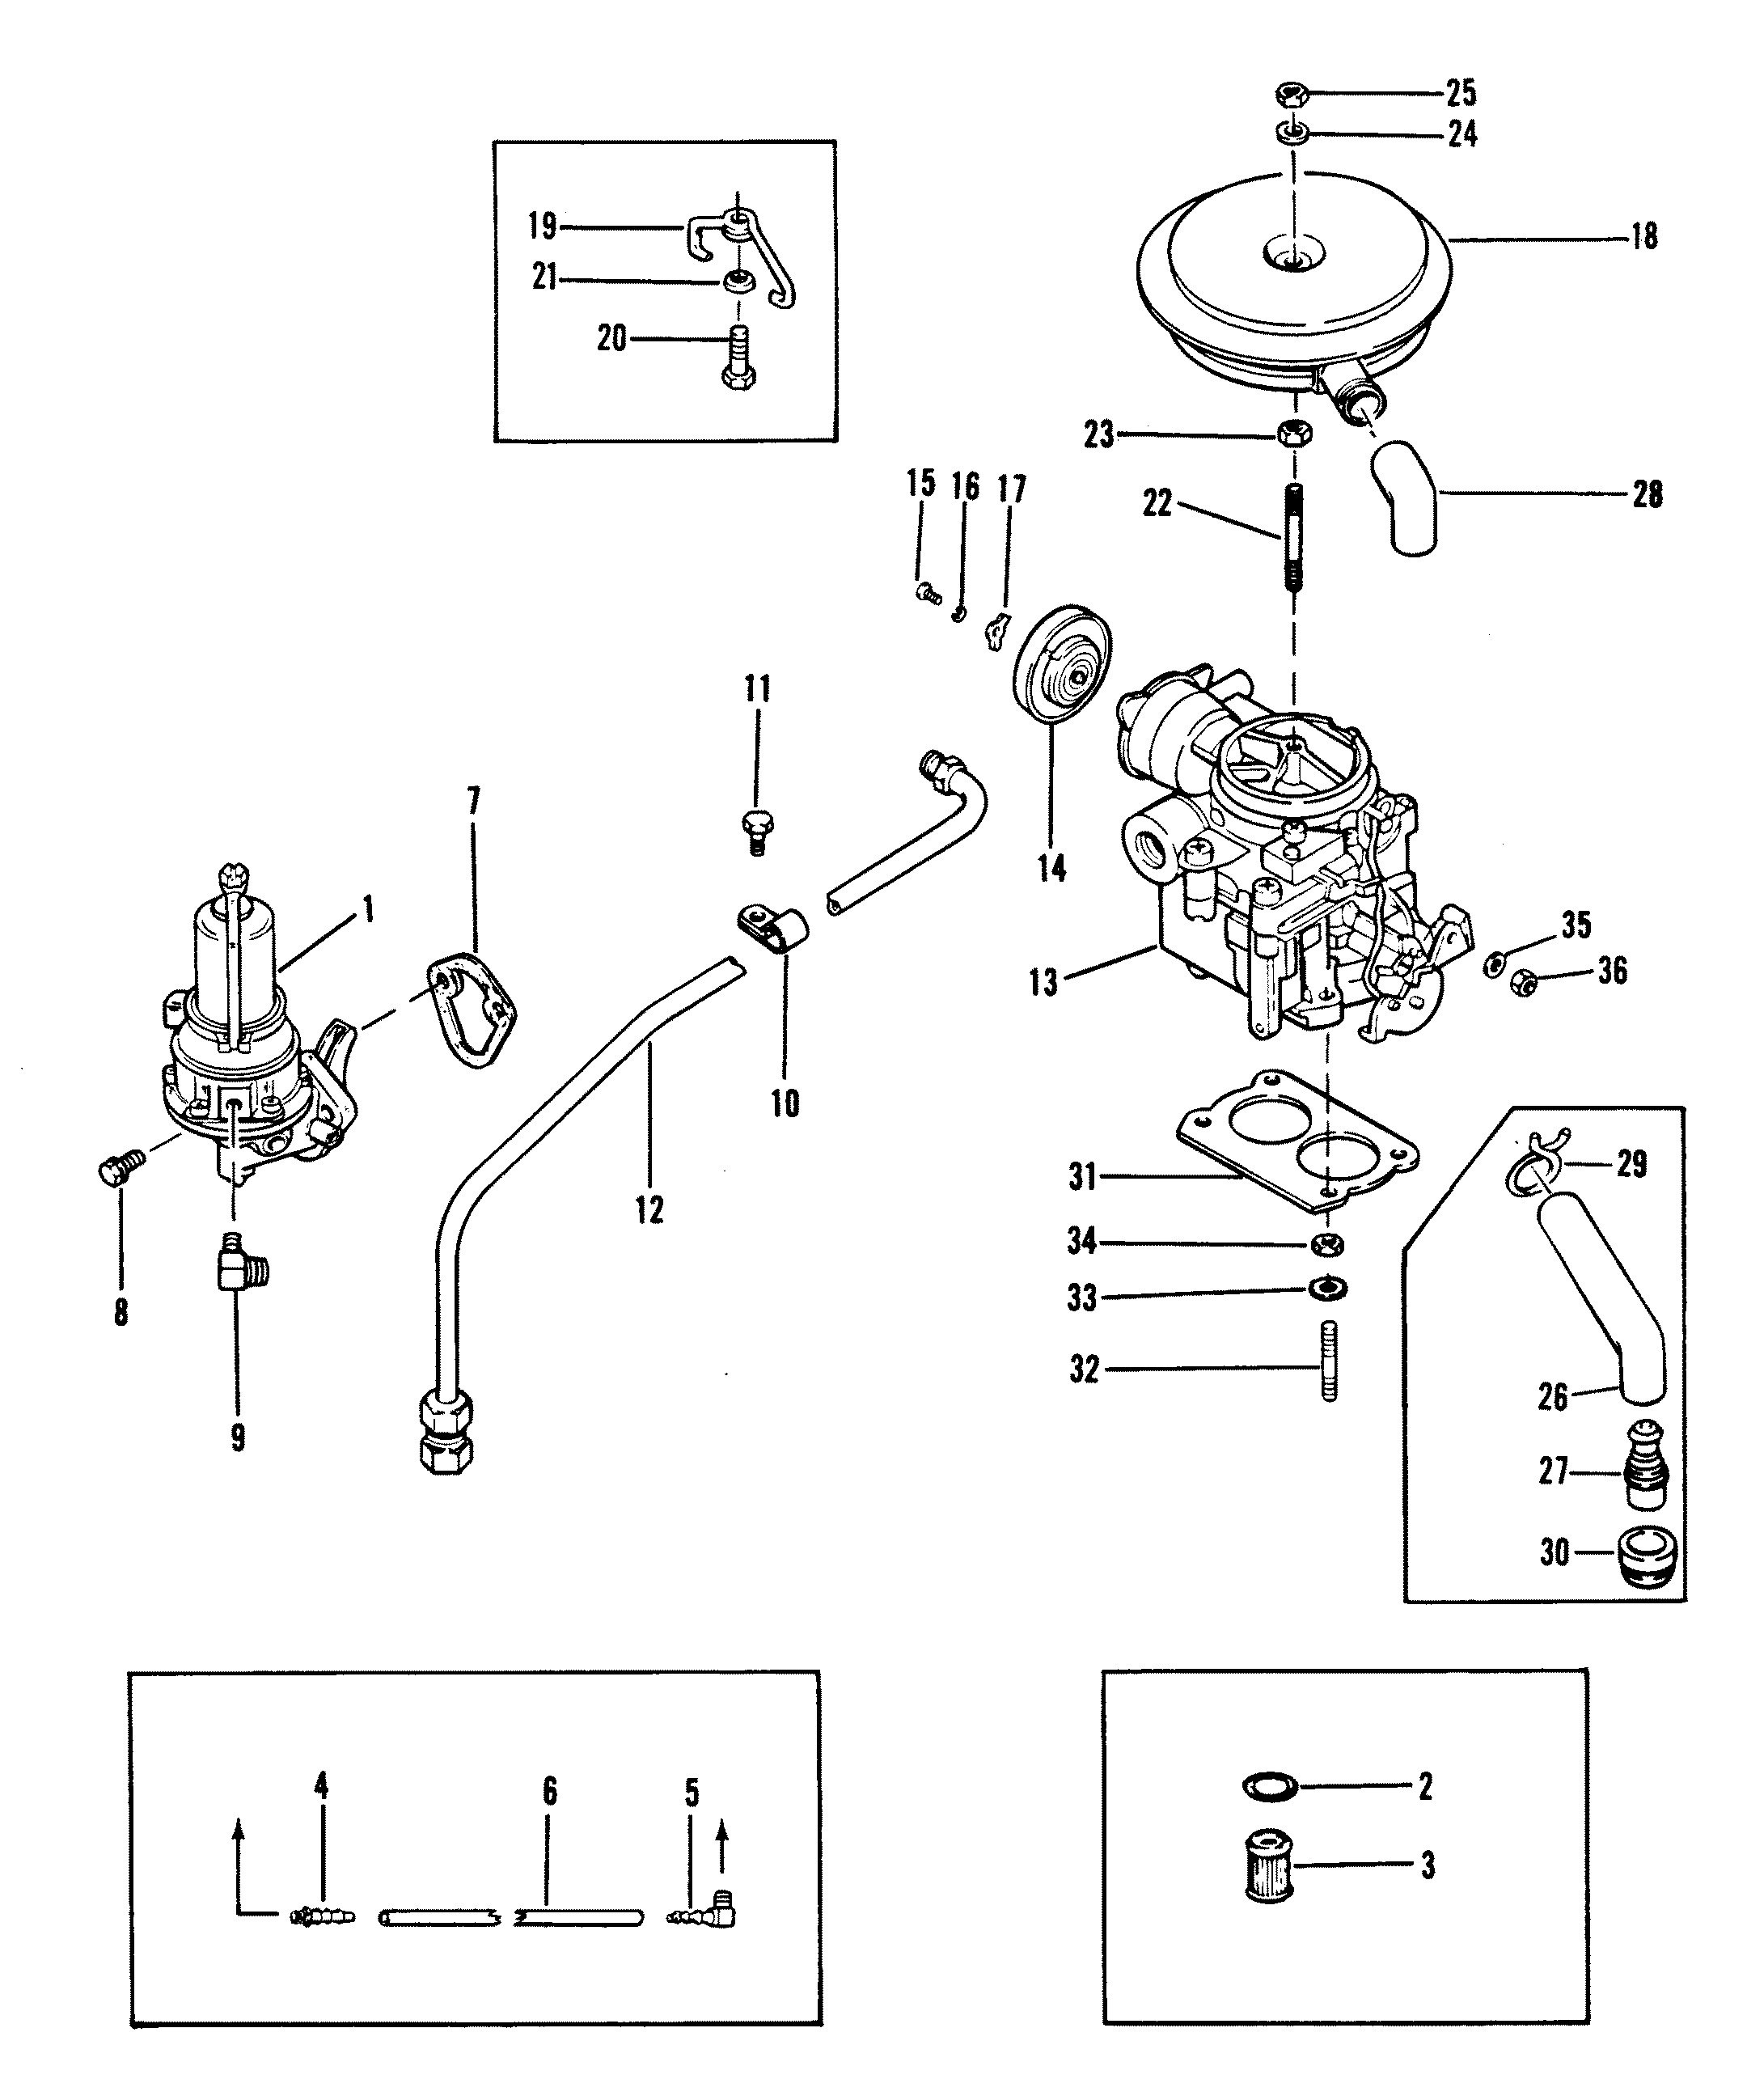 2004 expedition 5 4l engine diagram